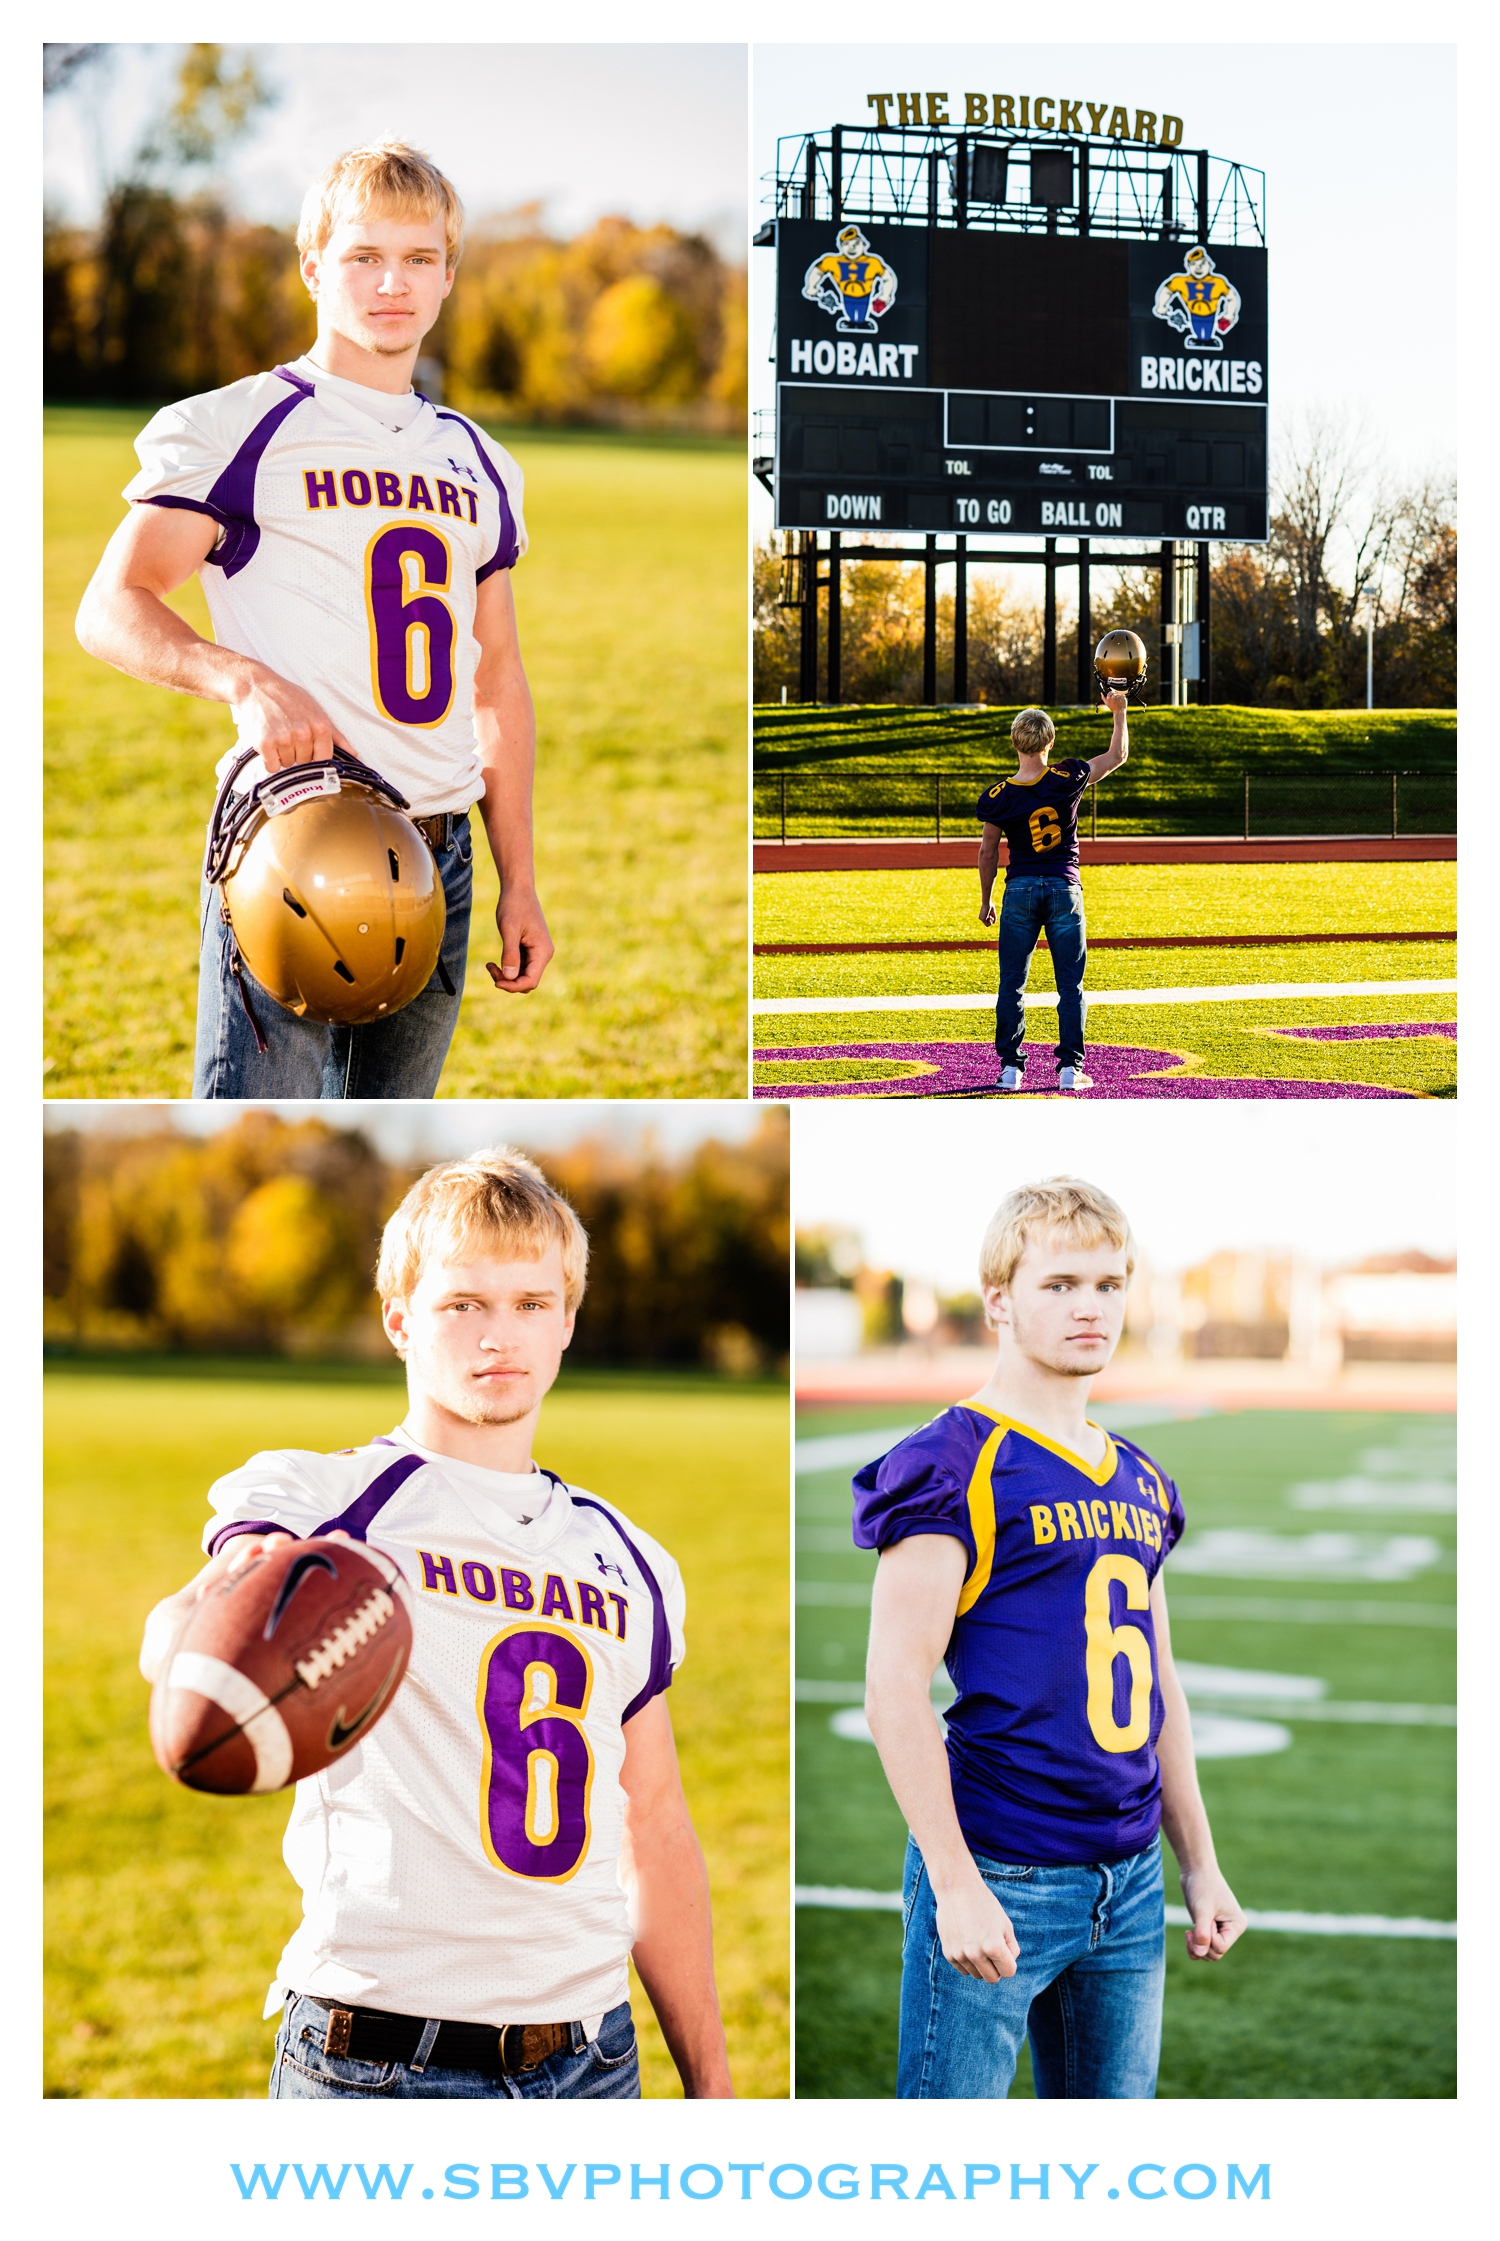 A Hobart Brickie high school senior on the field for senior pictures.